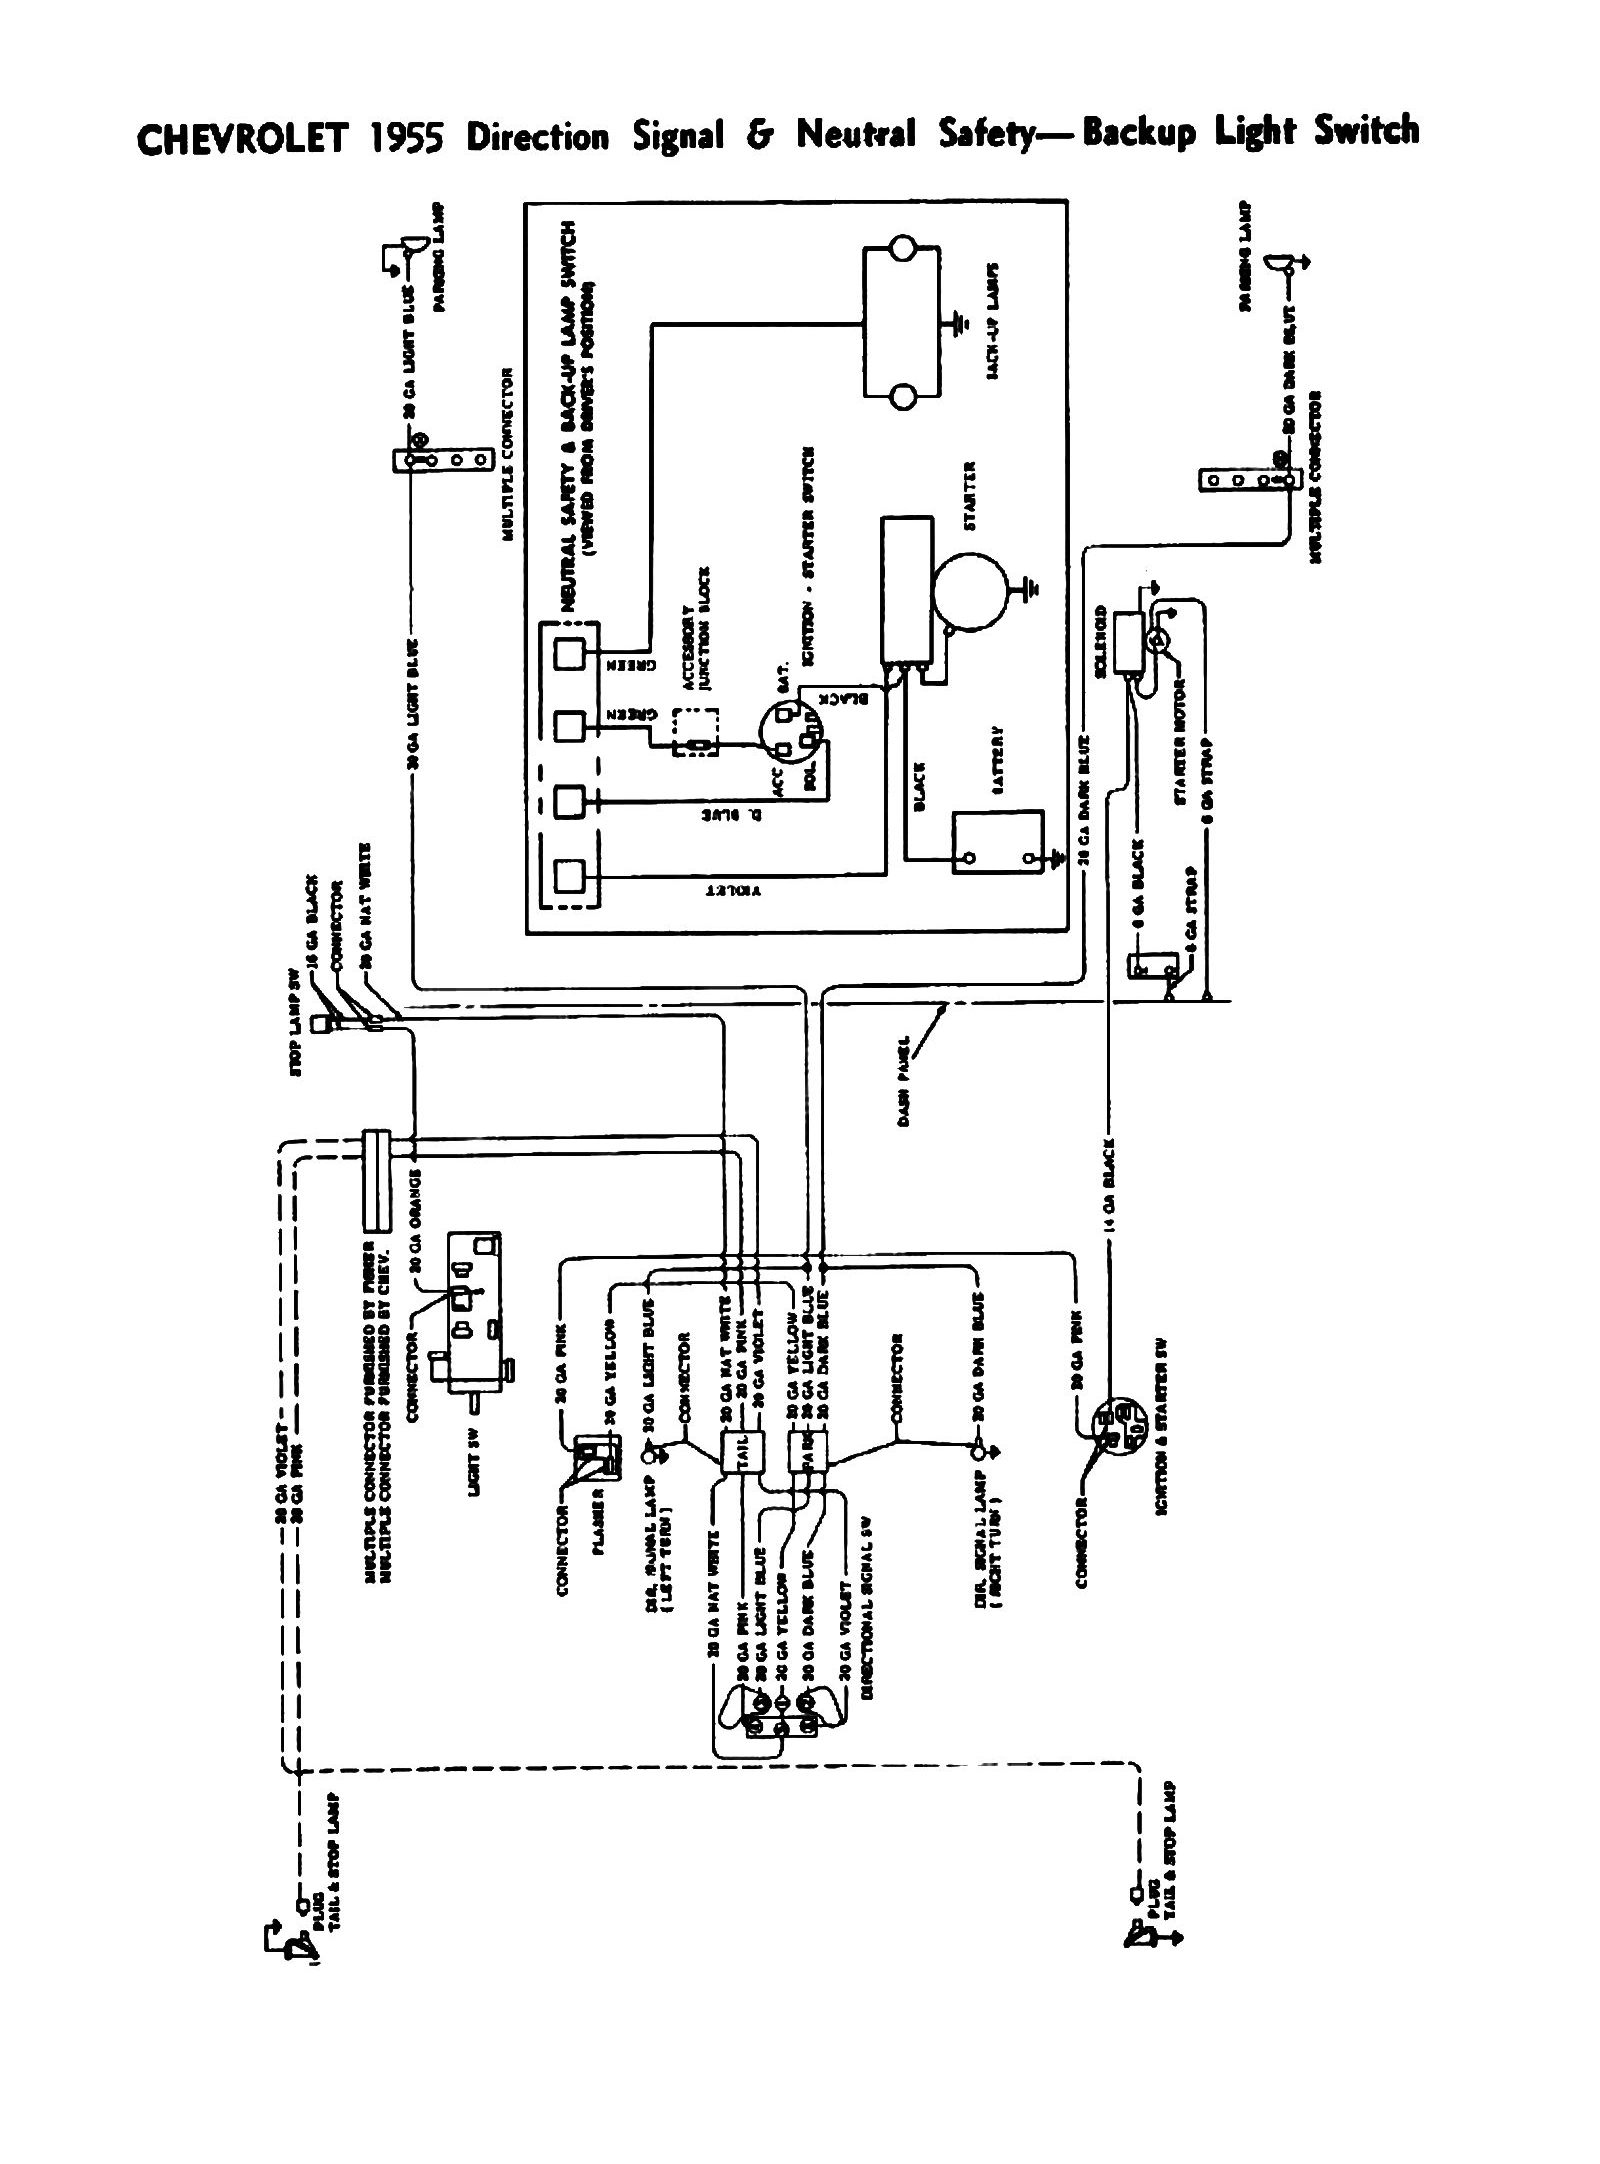 1955 chevy tail light wiring harness diagram 2005 chevy silverado tail light wiring harness back up lights - trifive.com, 1955 chevy 1956 chevy 1957 ... #14